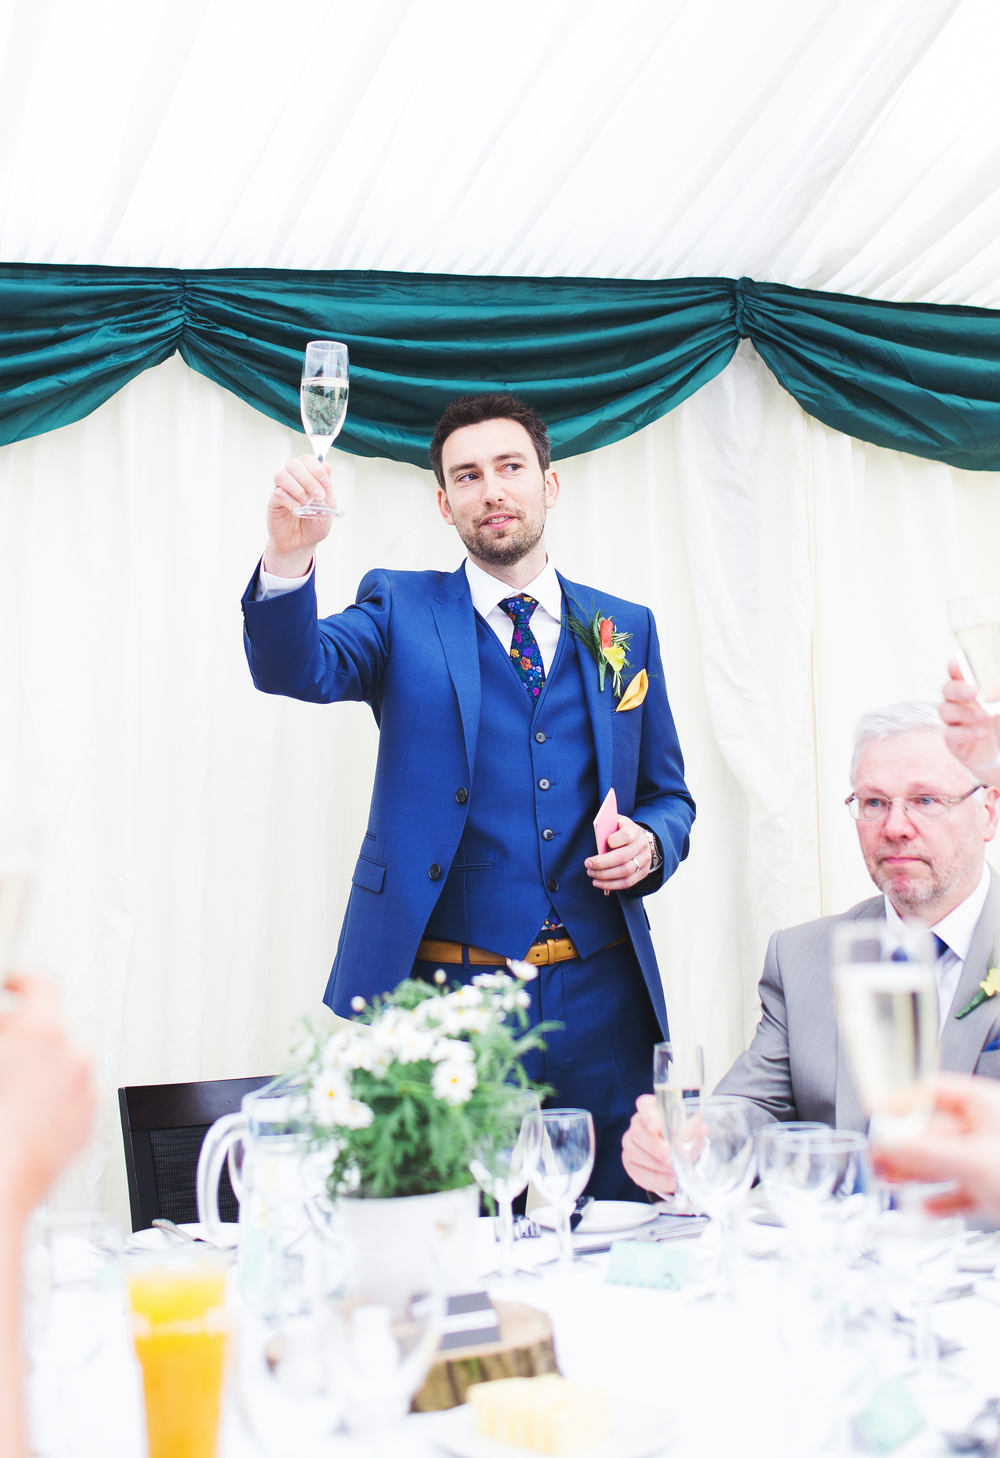 Cheers from the groom.